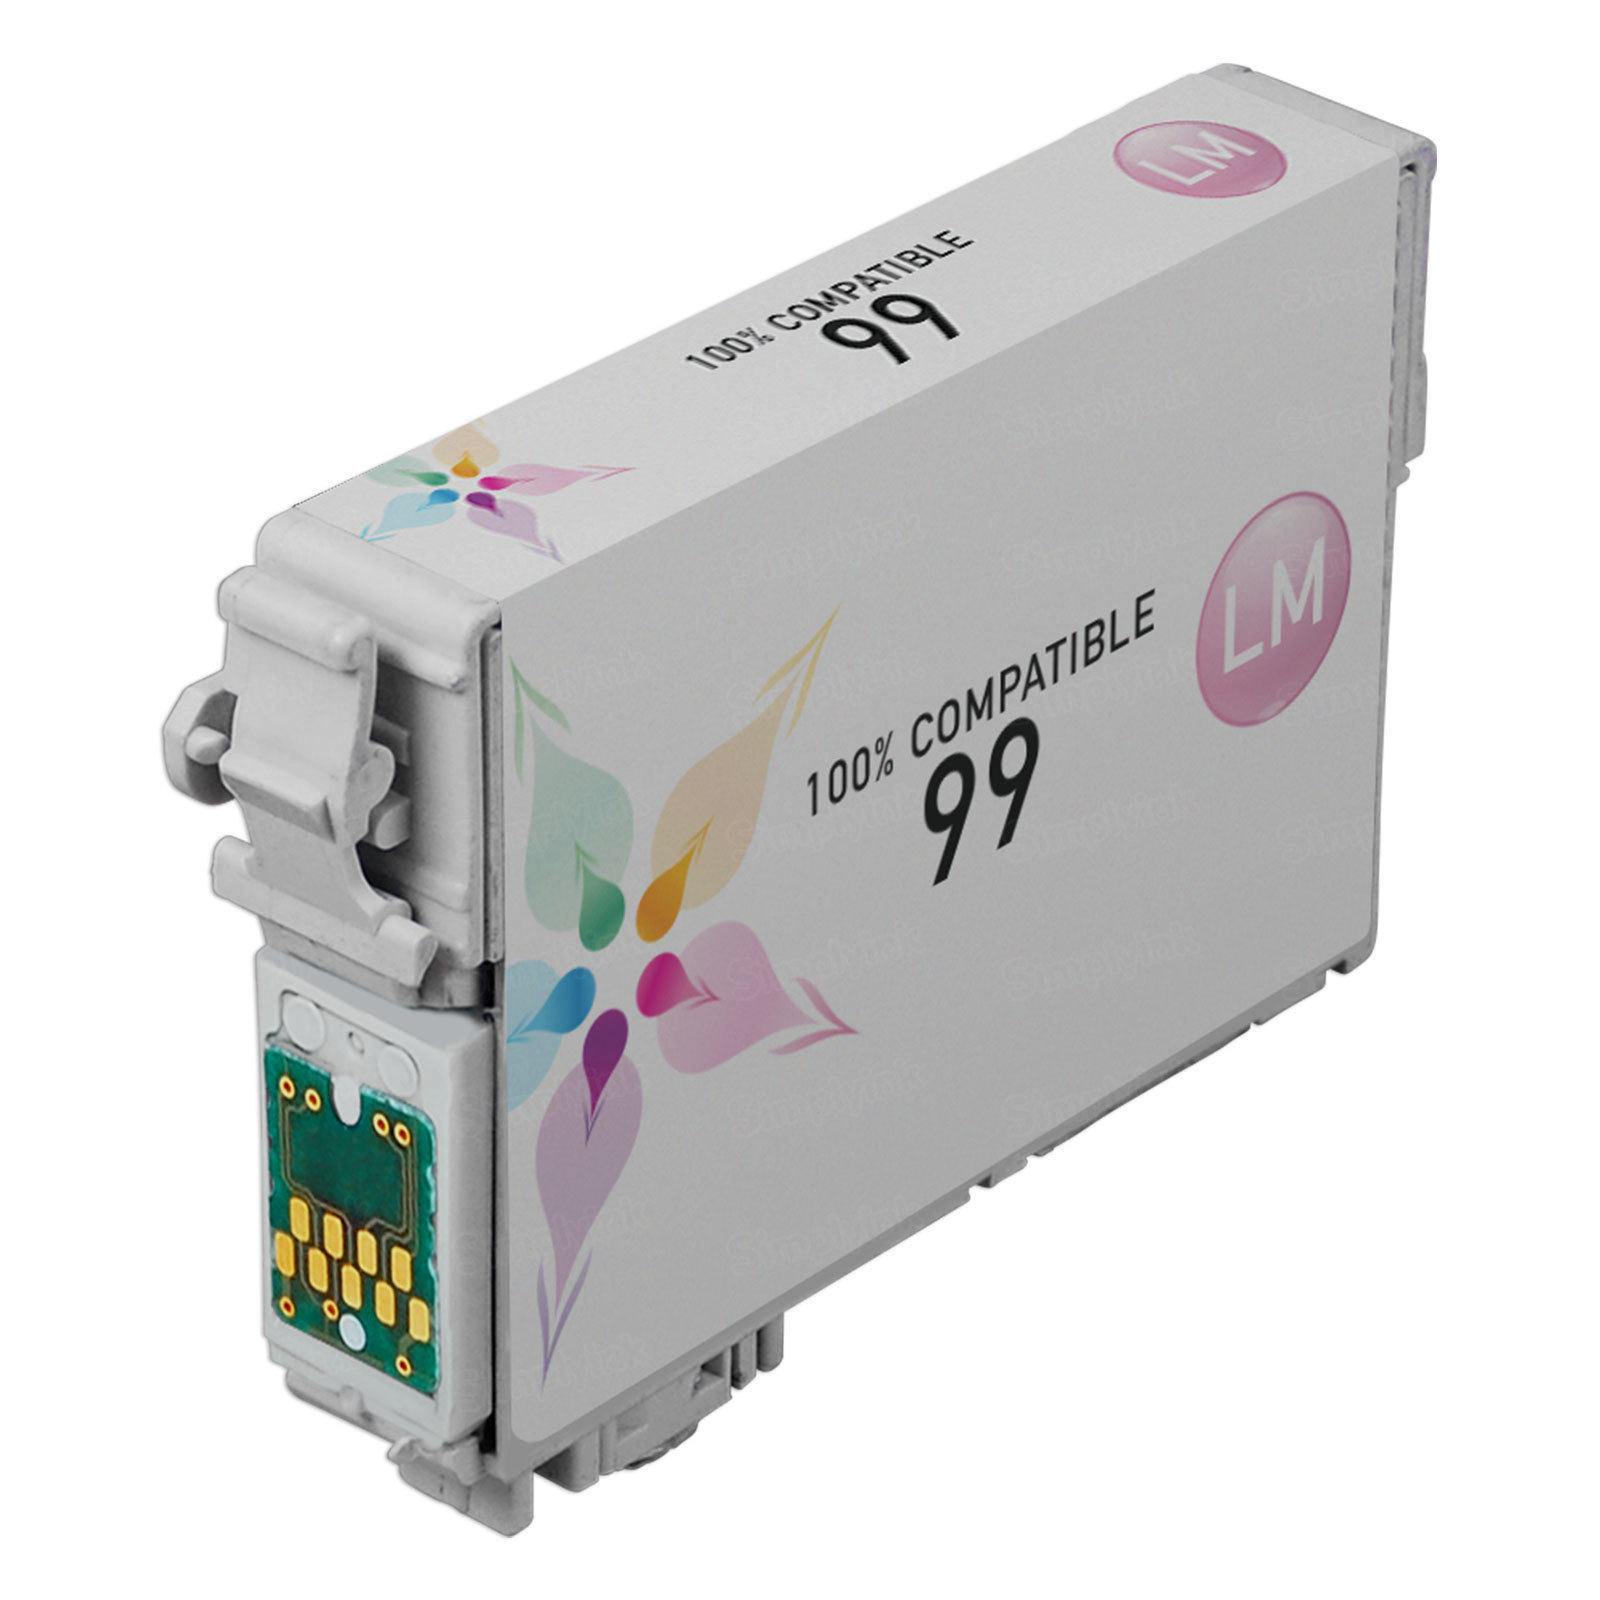 Epson Remanufactured T099620 Light Magenta Inkjet Cartridge for the Artisan 700, 800